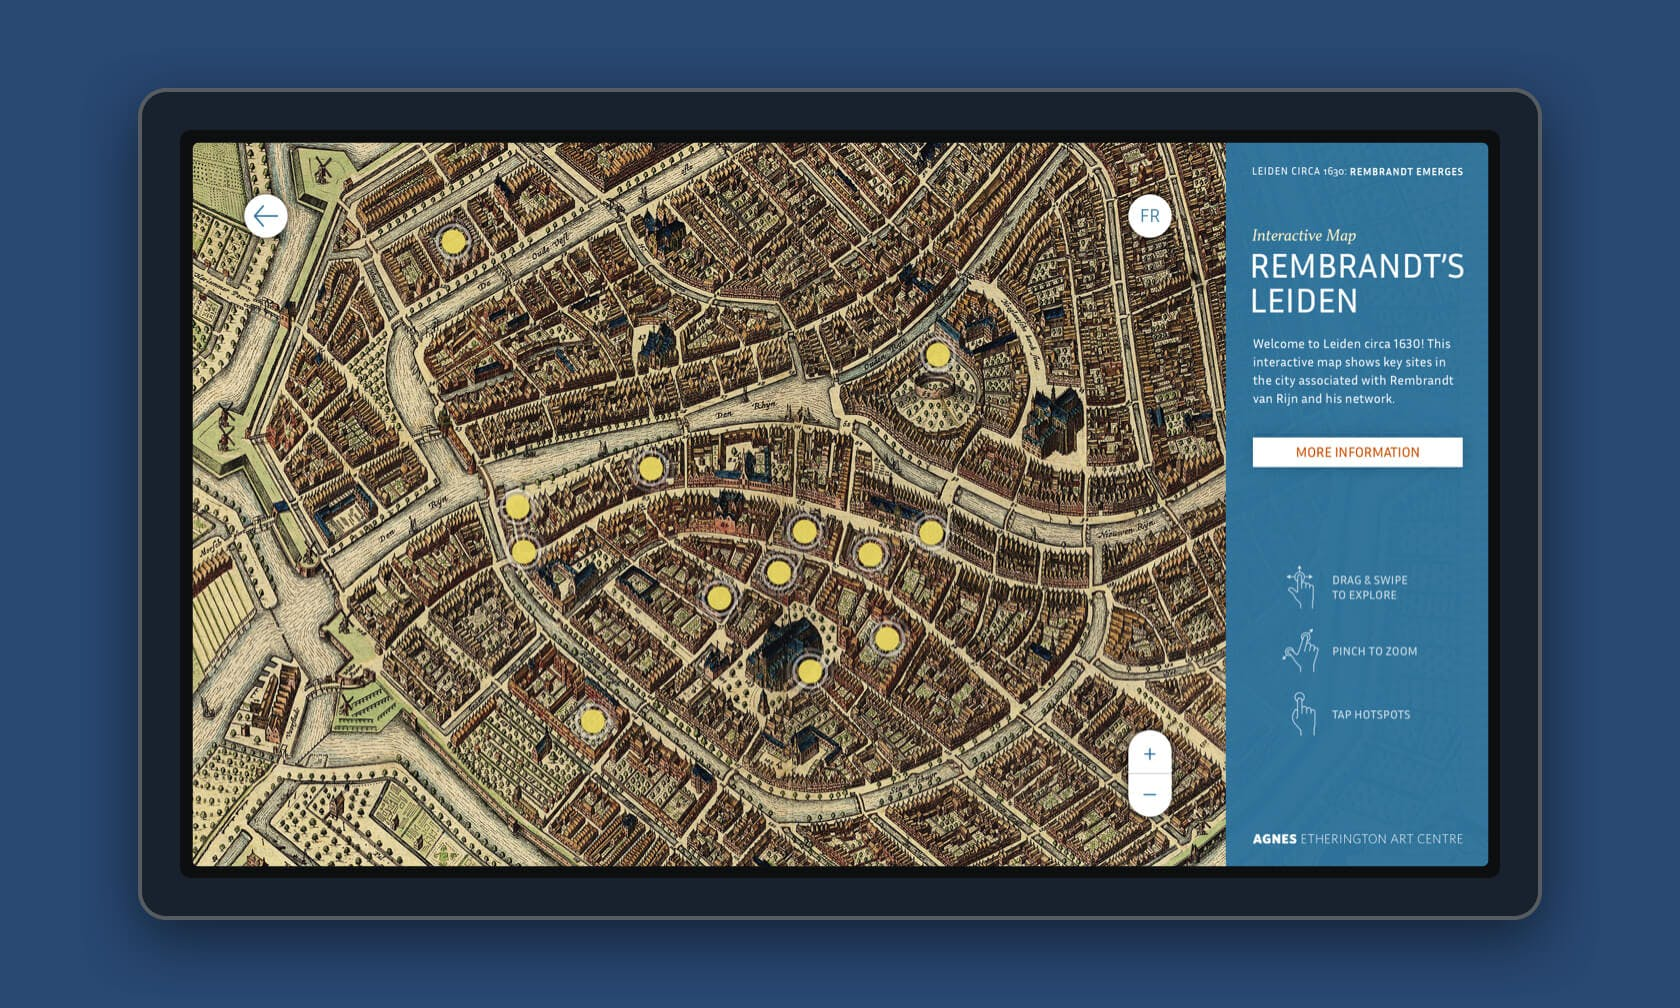 A screen displaying the design for the interactive map Rembrandt's Leiden, optimized for display on the 30-inch touchscreen used in-gallery at the Agnes Etherington Art Centre.